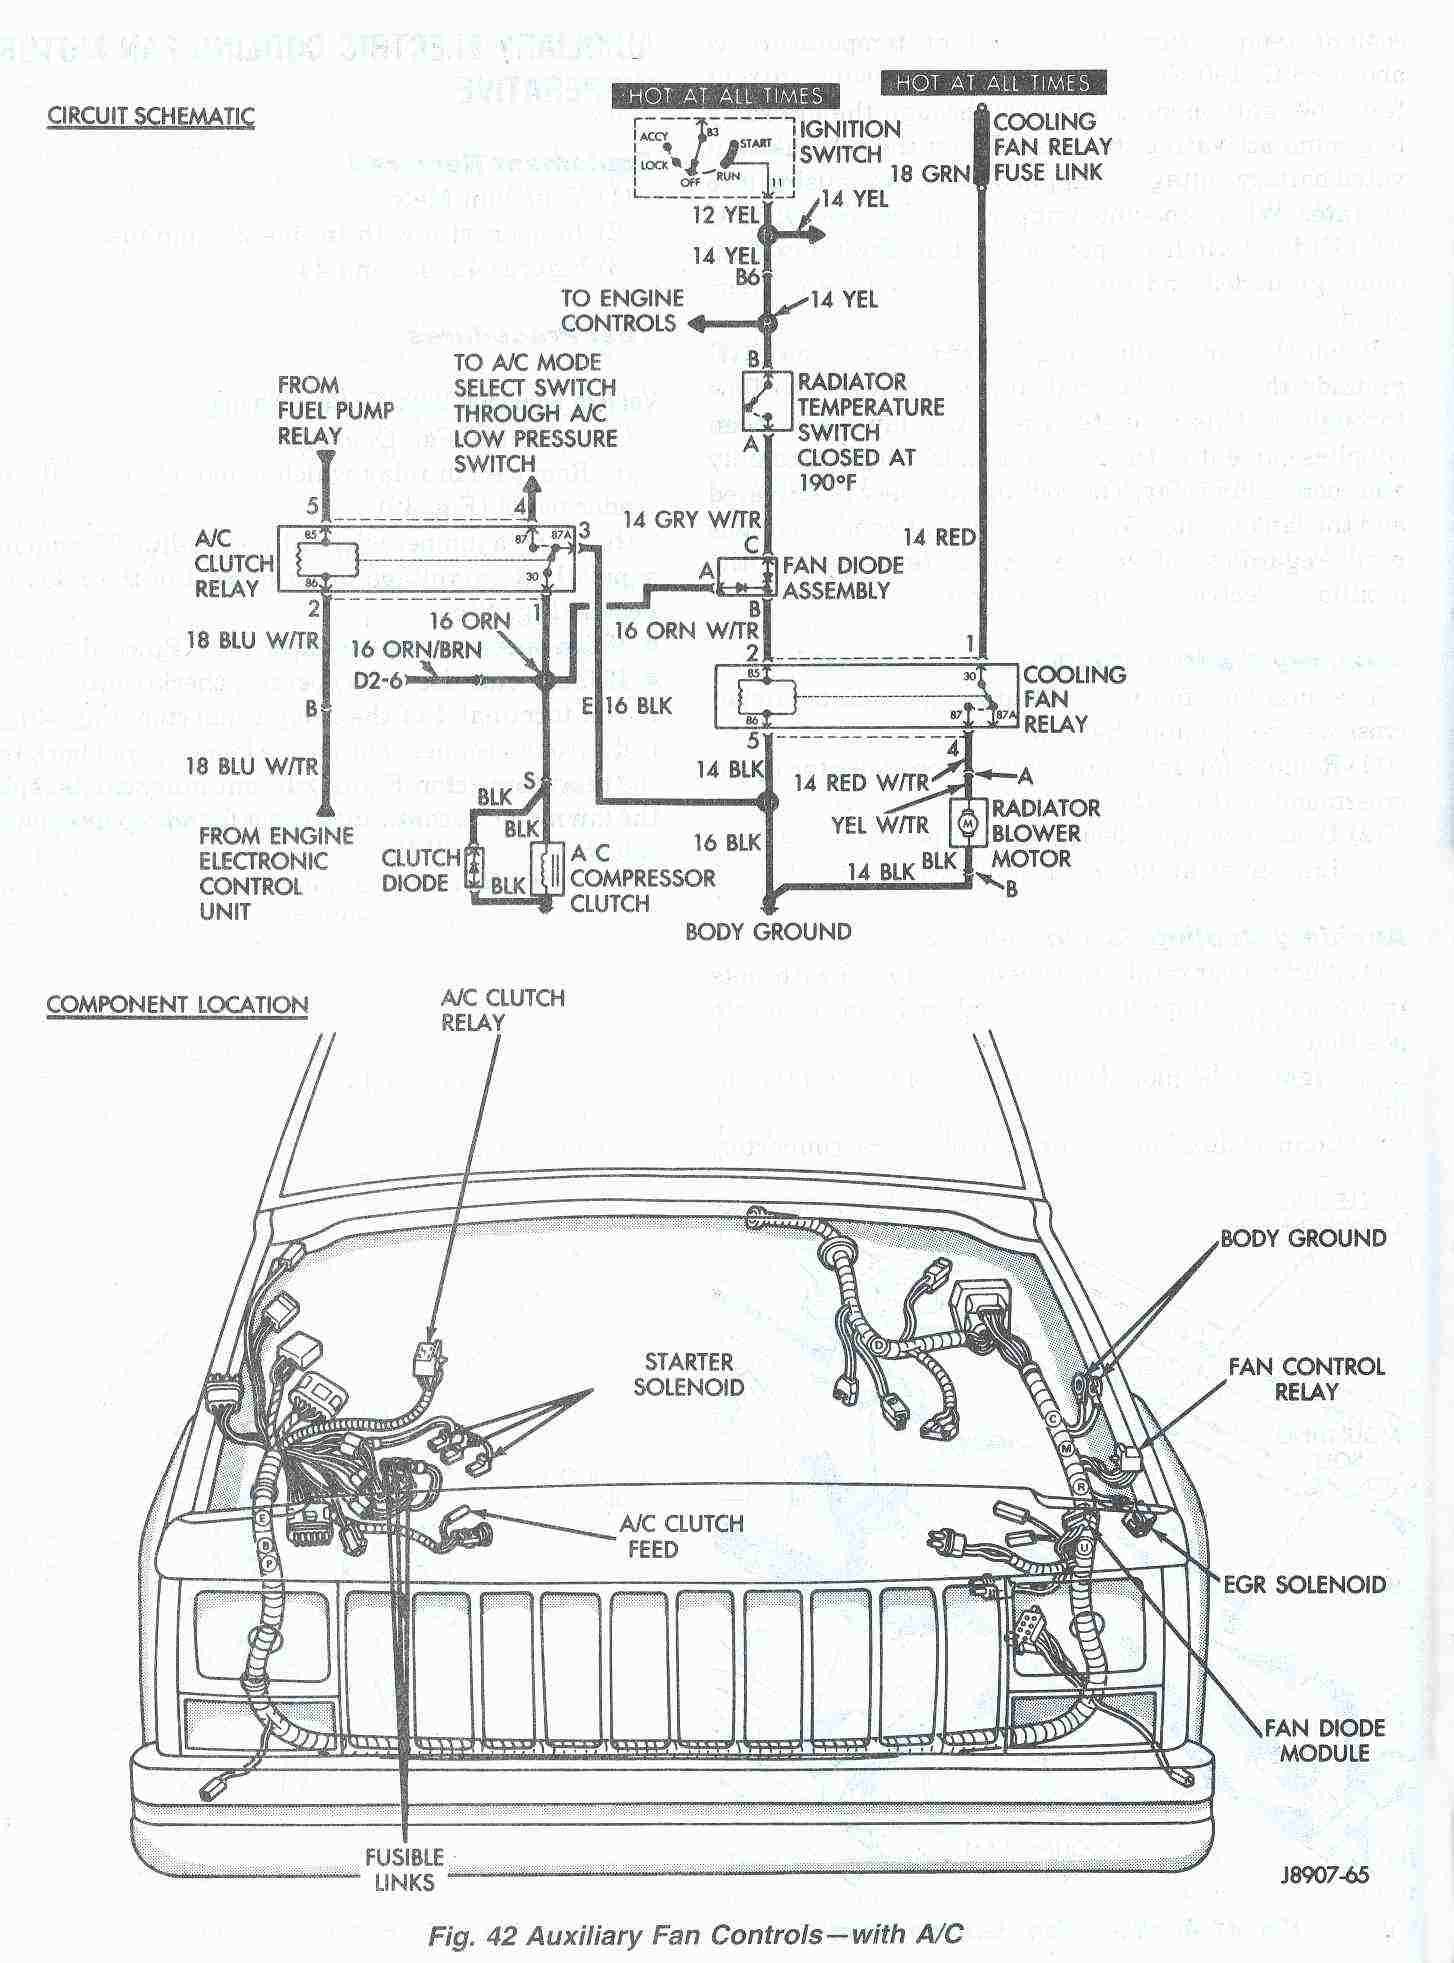 e8c83109bad6c41d377df8c1cb7a8dc4 auxiliary_fan_schematic_fig_42 jpg (1454�1963) cherokee diagrams 1997 jeep grand cherokee wiring schematic at nearapp.co